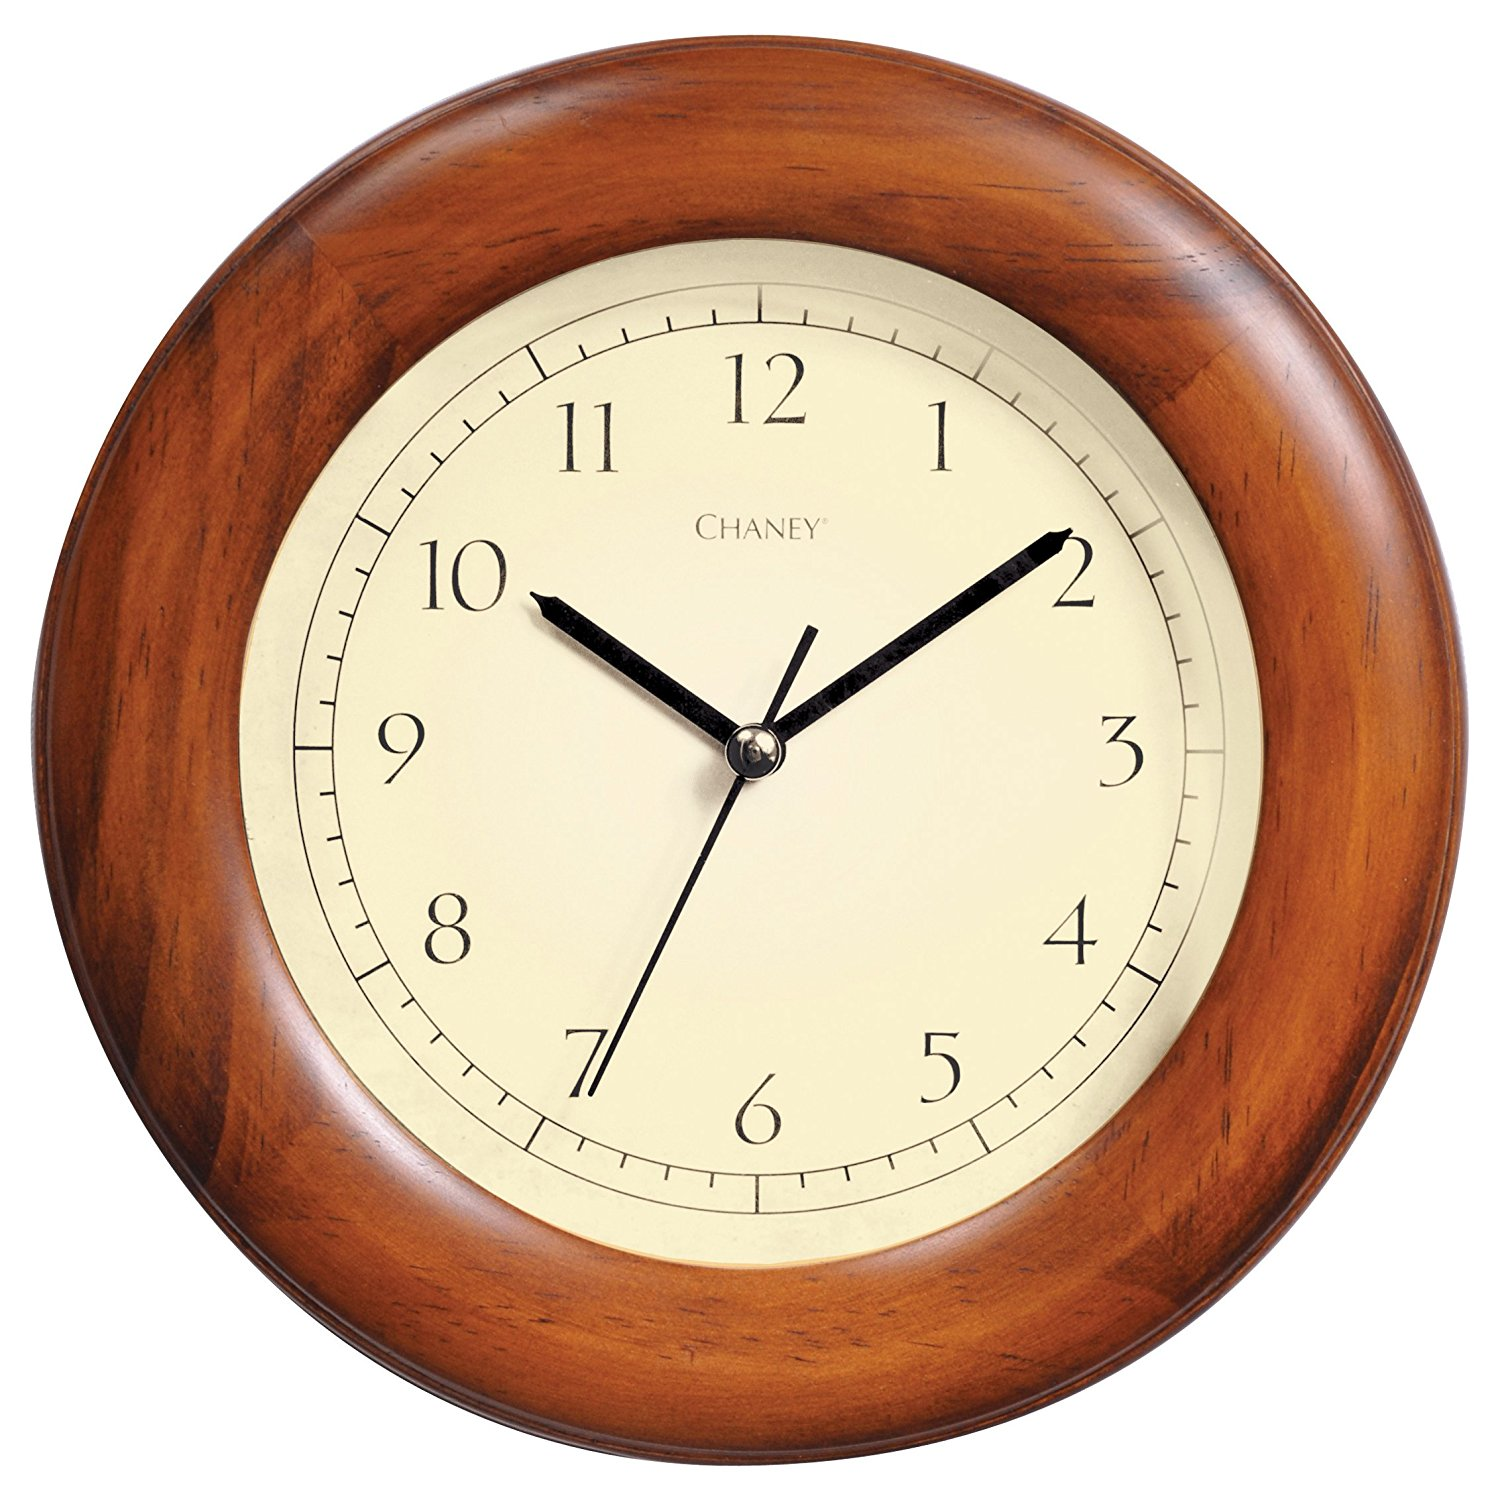 Chaney 75171 Poplar Wood Wall Clock, 8""